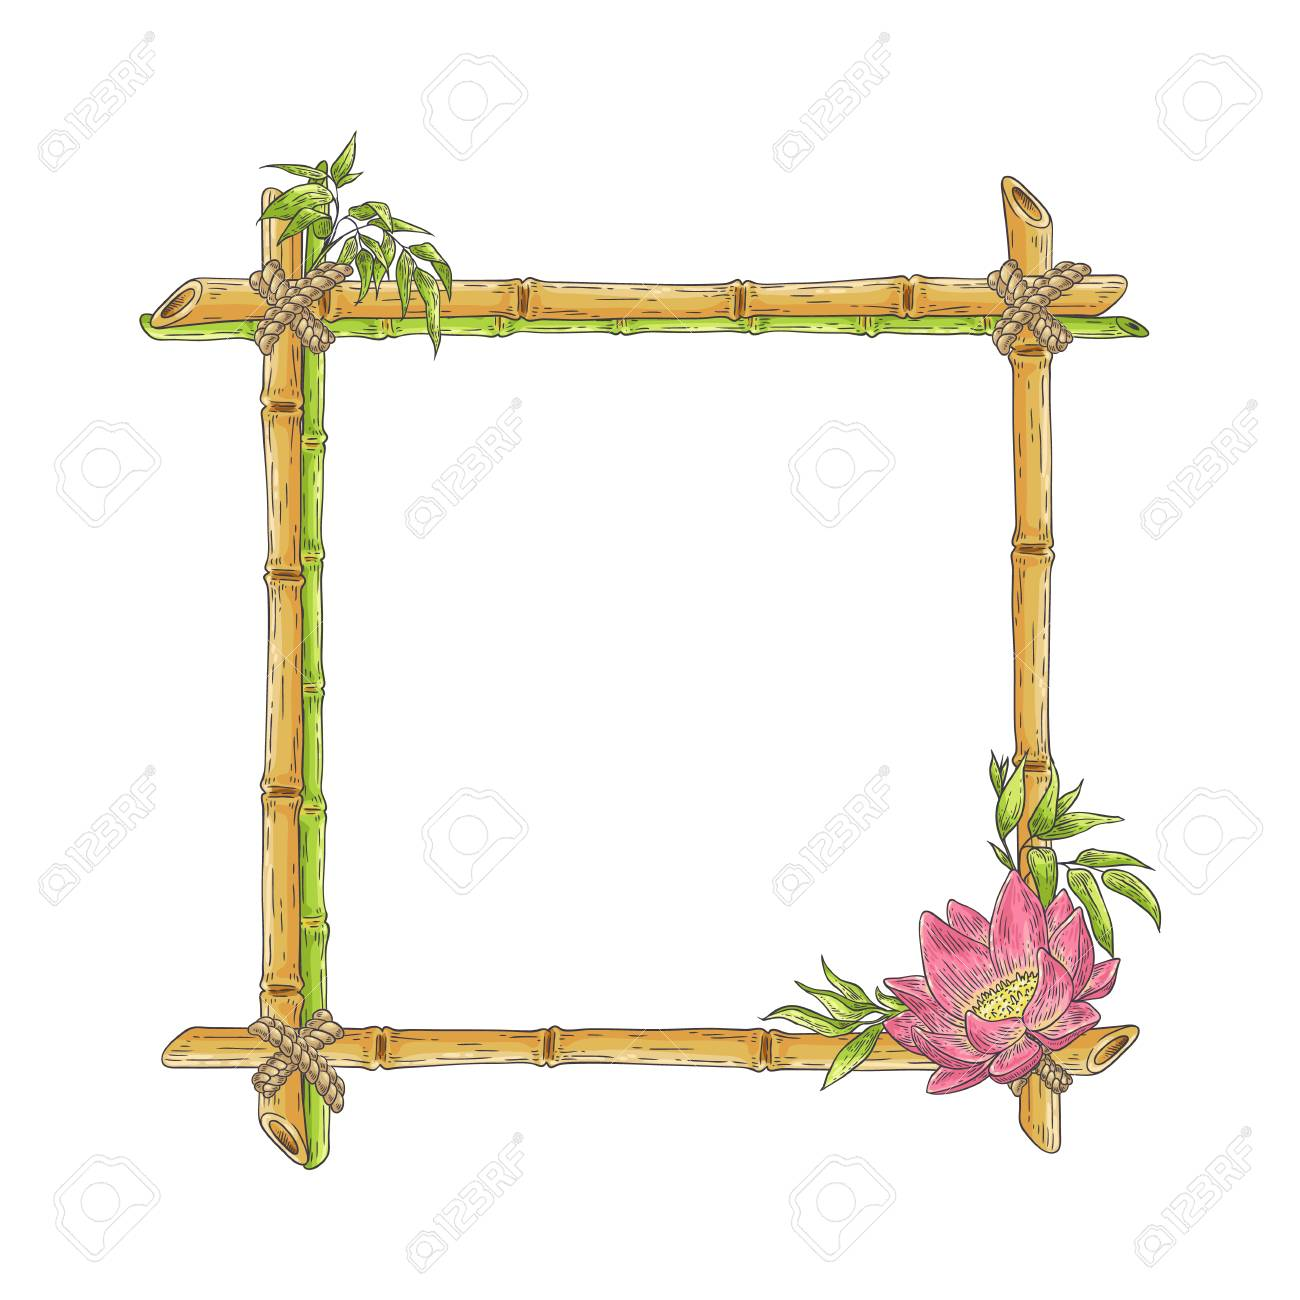 Vector bamboo frame with lotus flower, abstract green plants and leaves. Traditional chinese, eastern culture decoration with copy space. Sketch wooden sicks binded by rope. Asian design background. - 118426165